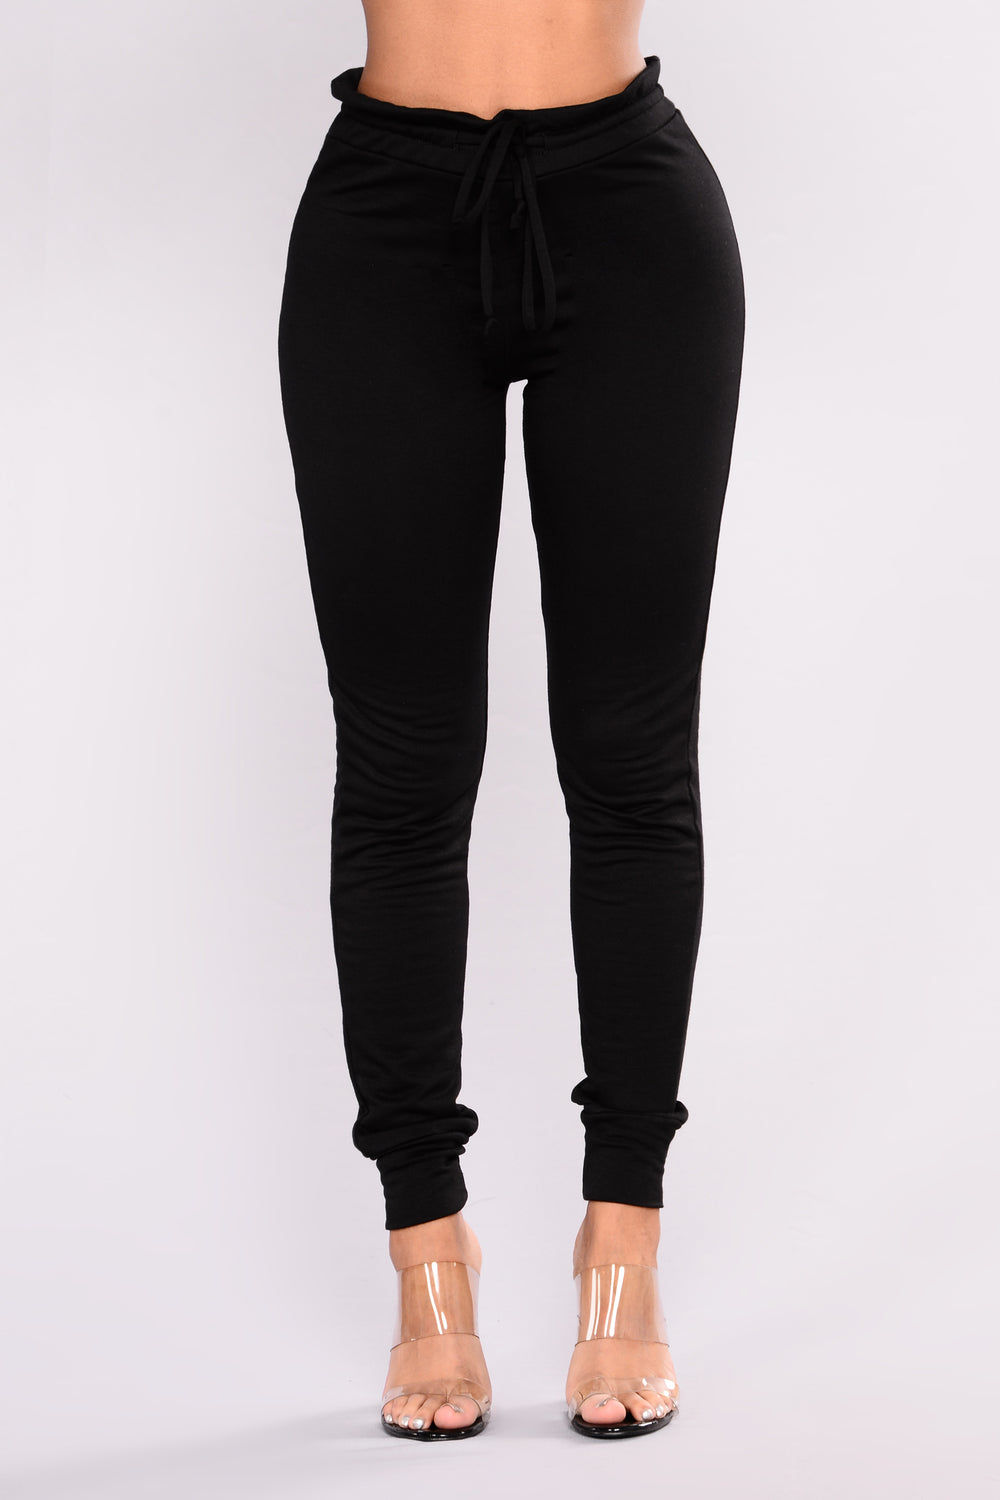 Forget Me Not Jogger - Black